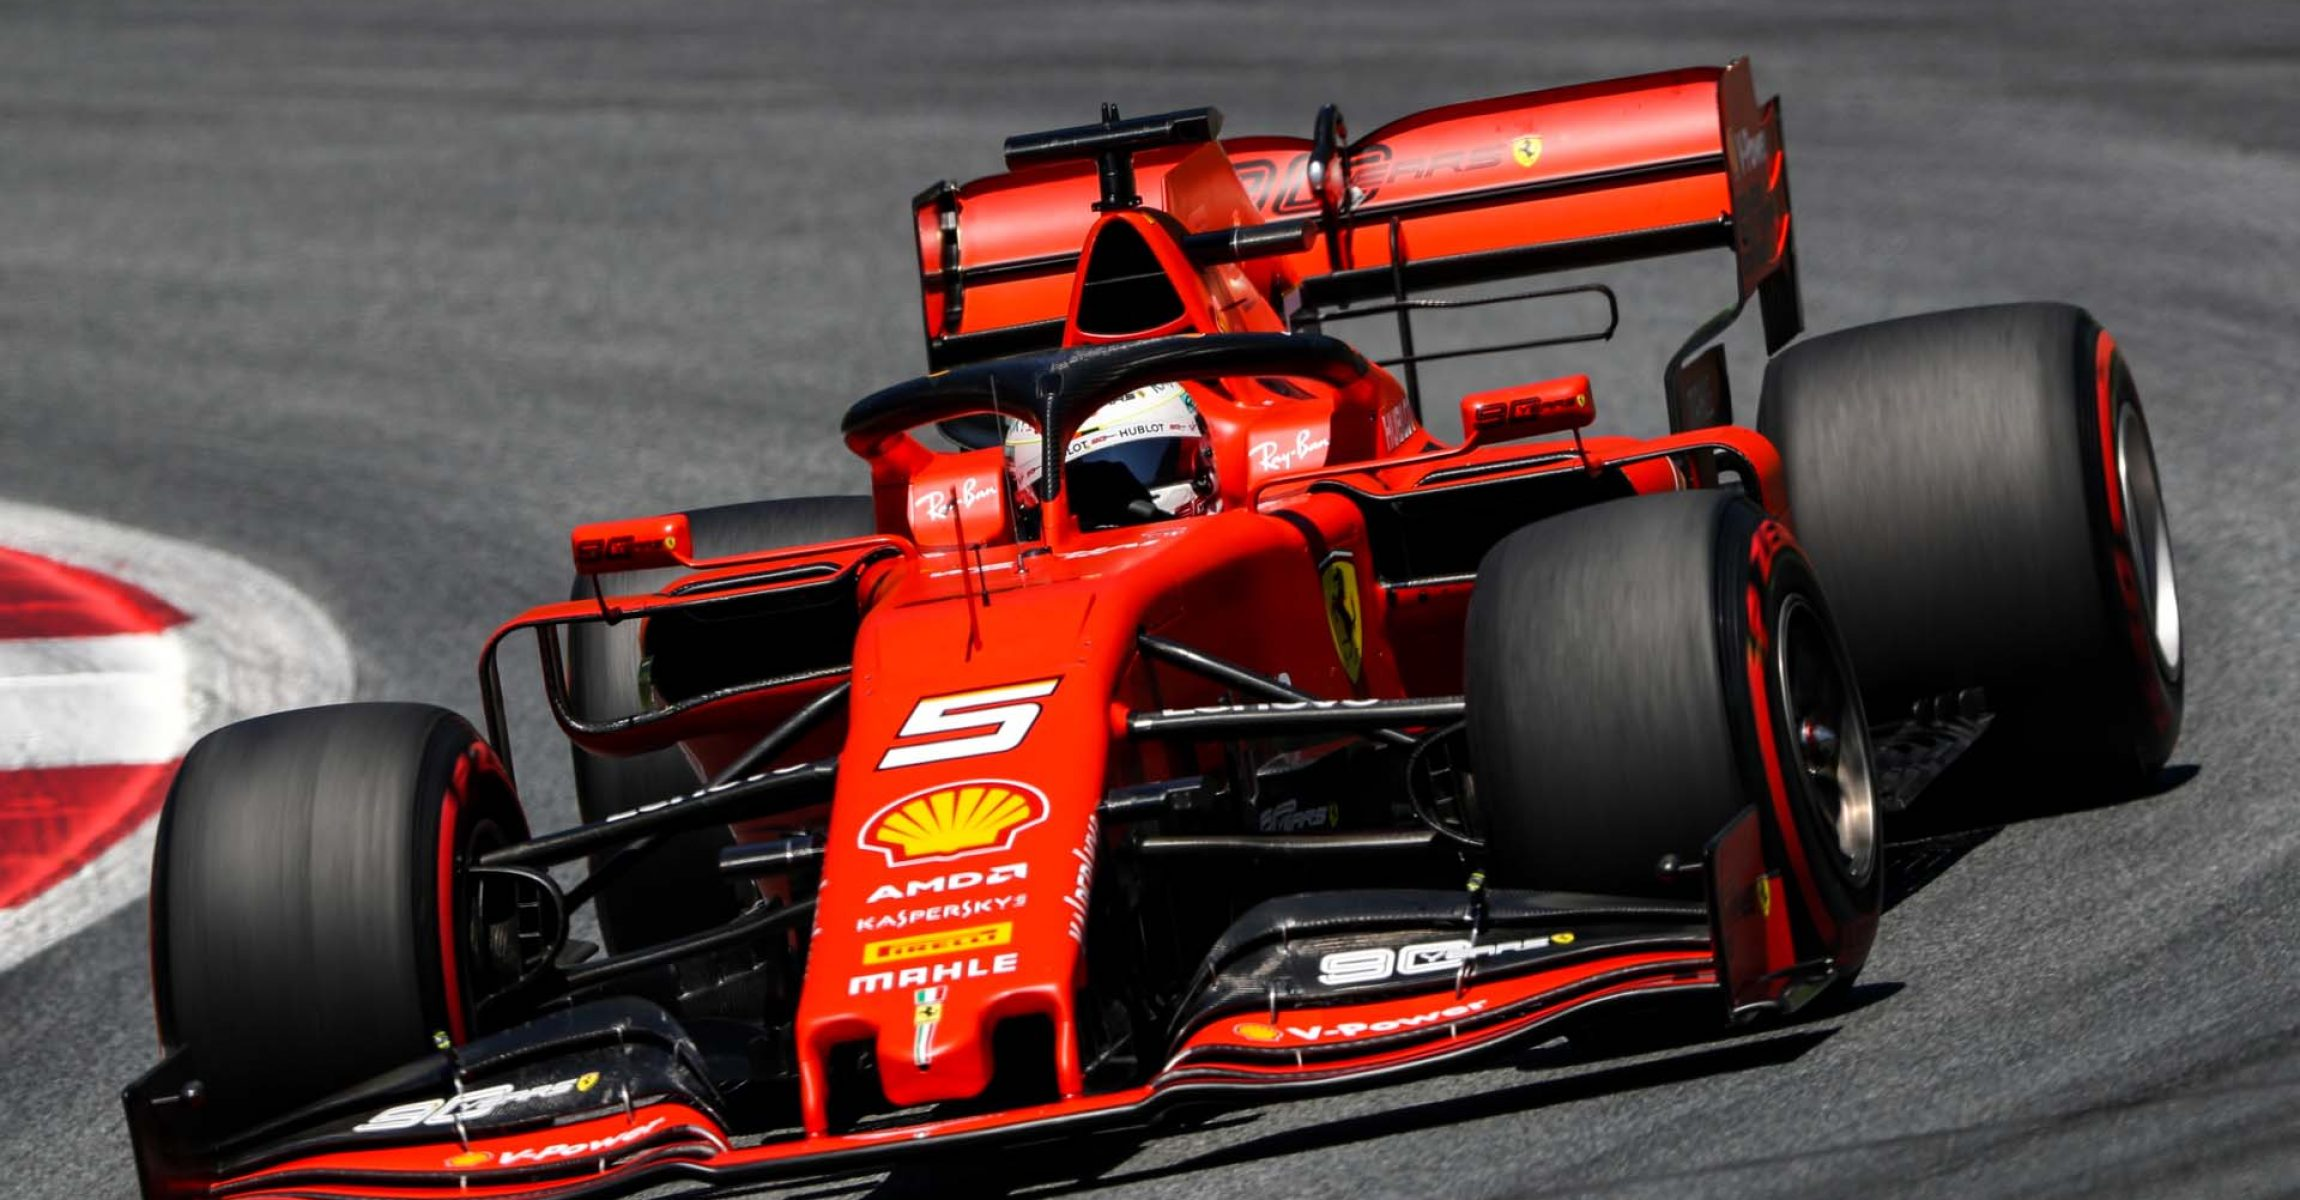 SPIELBERG,AUSTRIA,29.JUN.19 - MOTORSPORTS, FORMULA 1 - Grand Prix of Austria, Red Bull Ring, qualification. Image shows Sebastian Vettel (GER/ Ferrari). Photo: GEPA pictures/ Matic Klansek - For editorial use only. Image is free of charge.